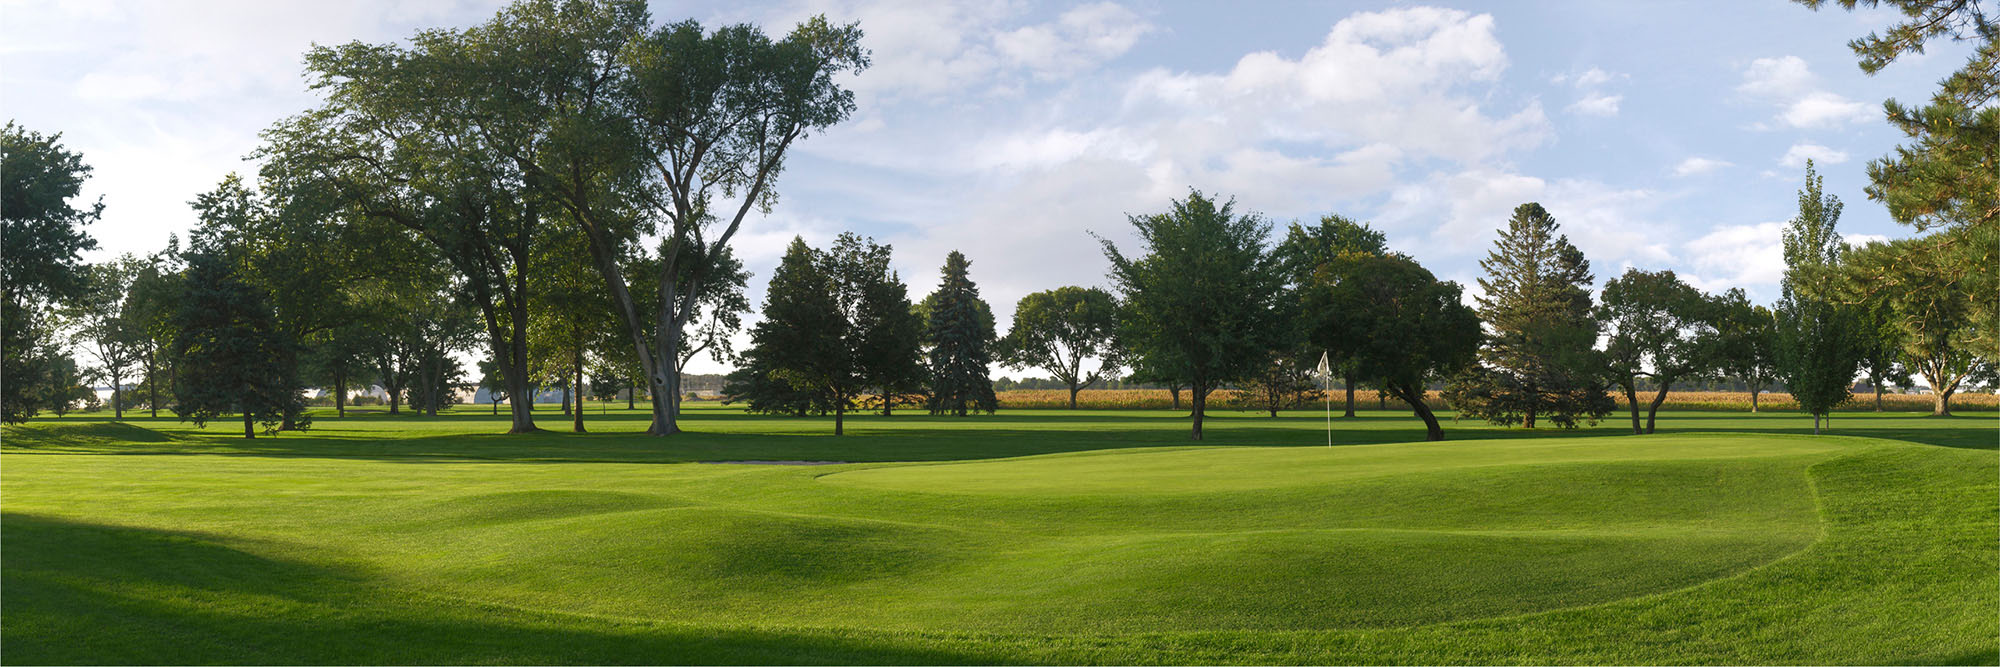 Golf Course Image - Fremont No. 7